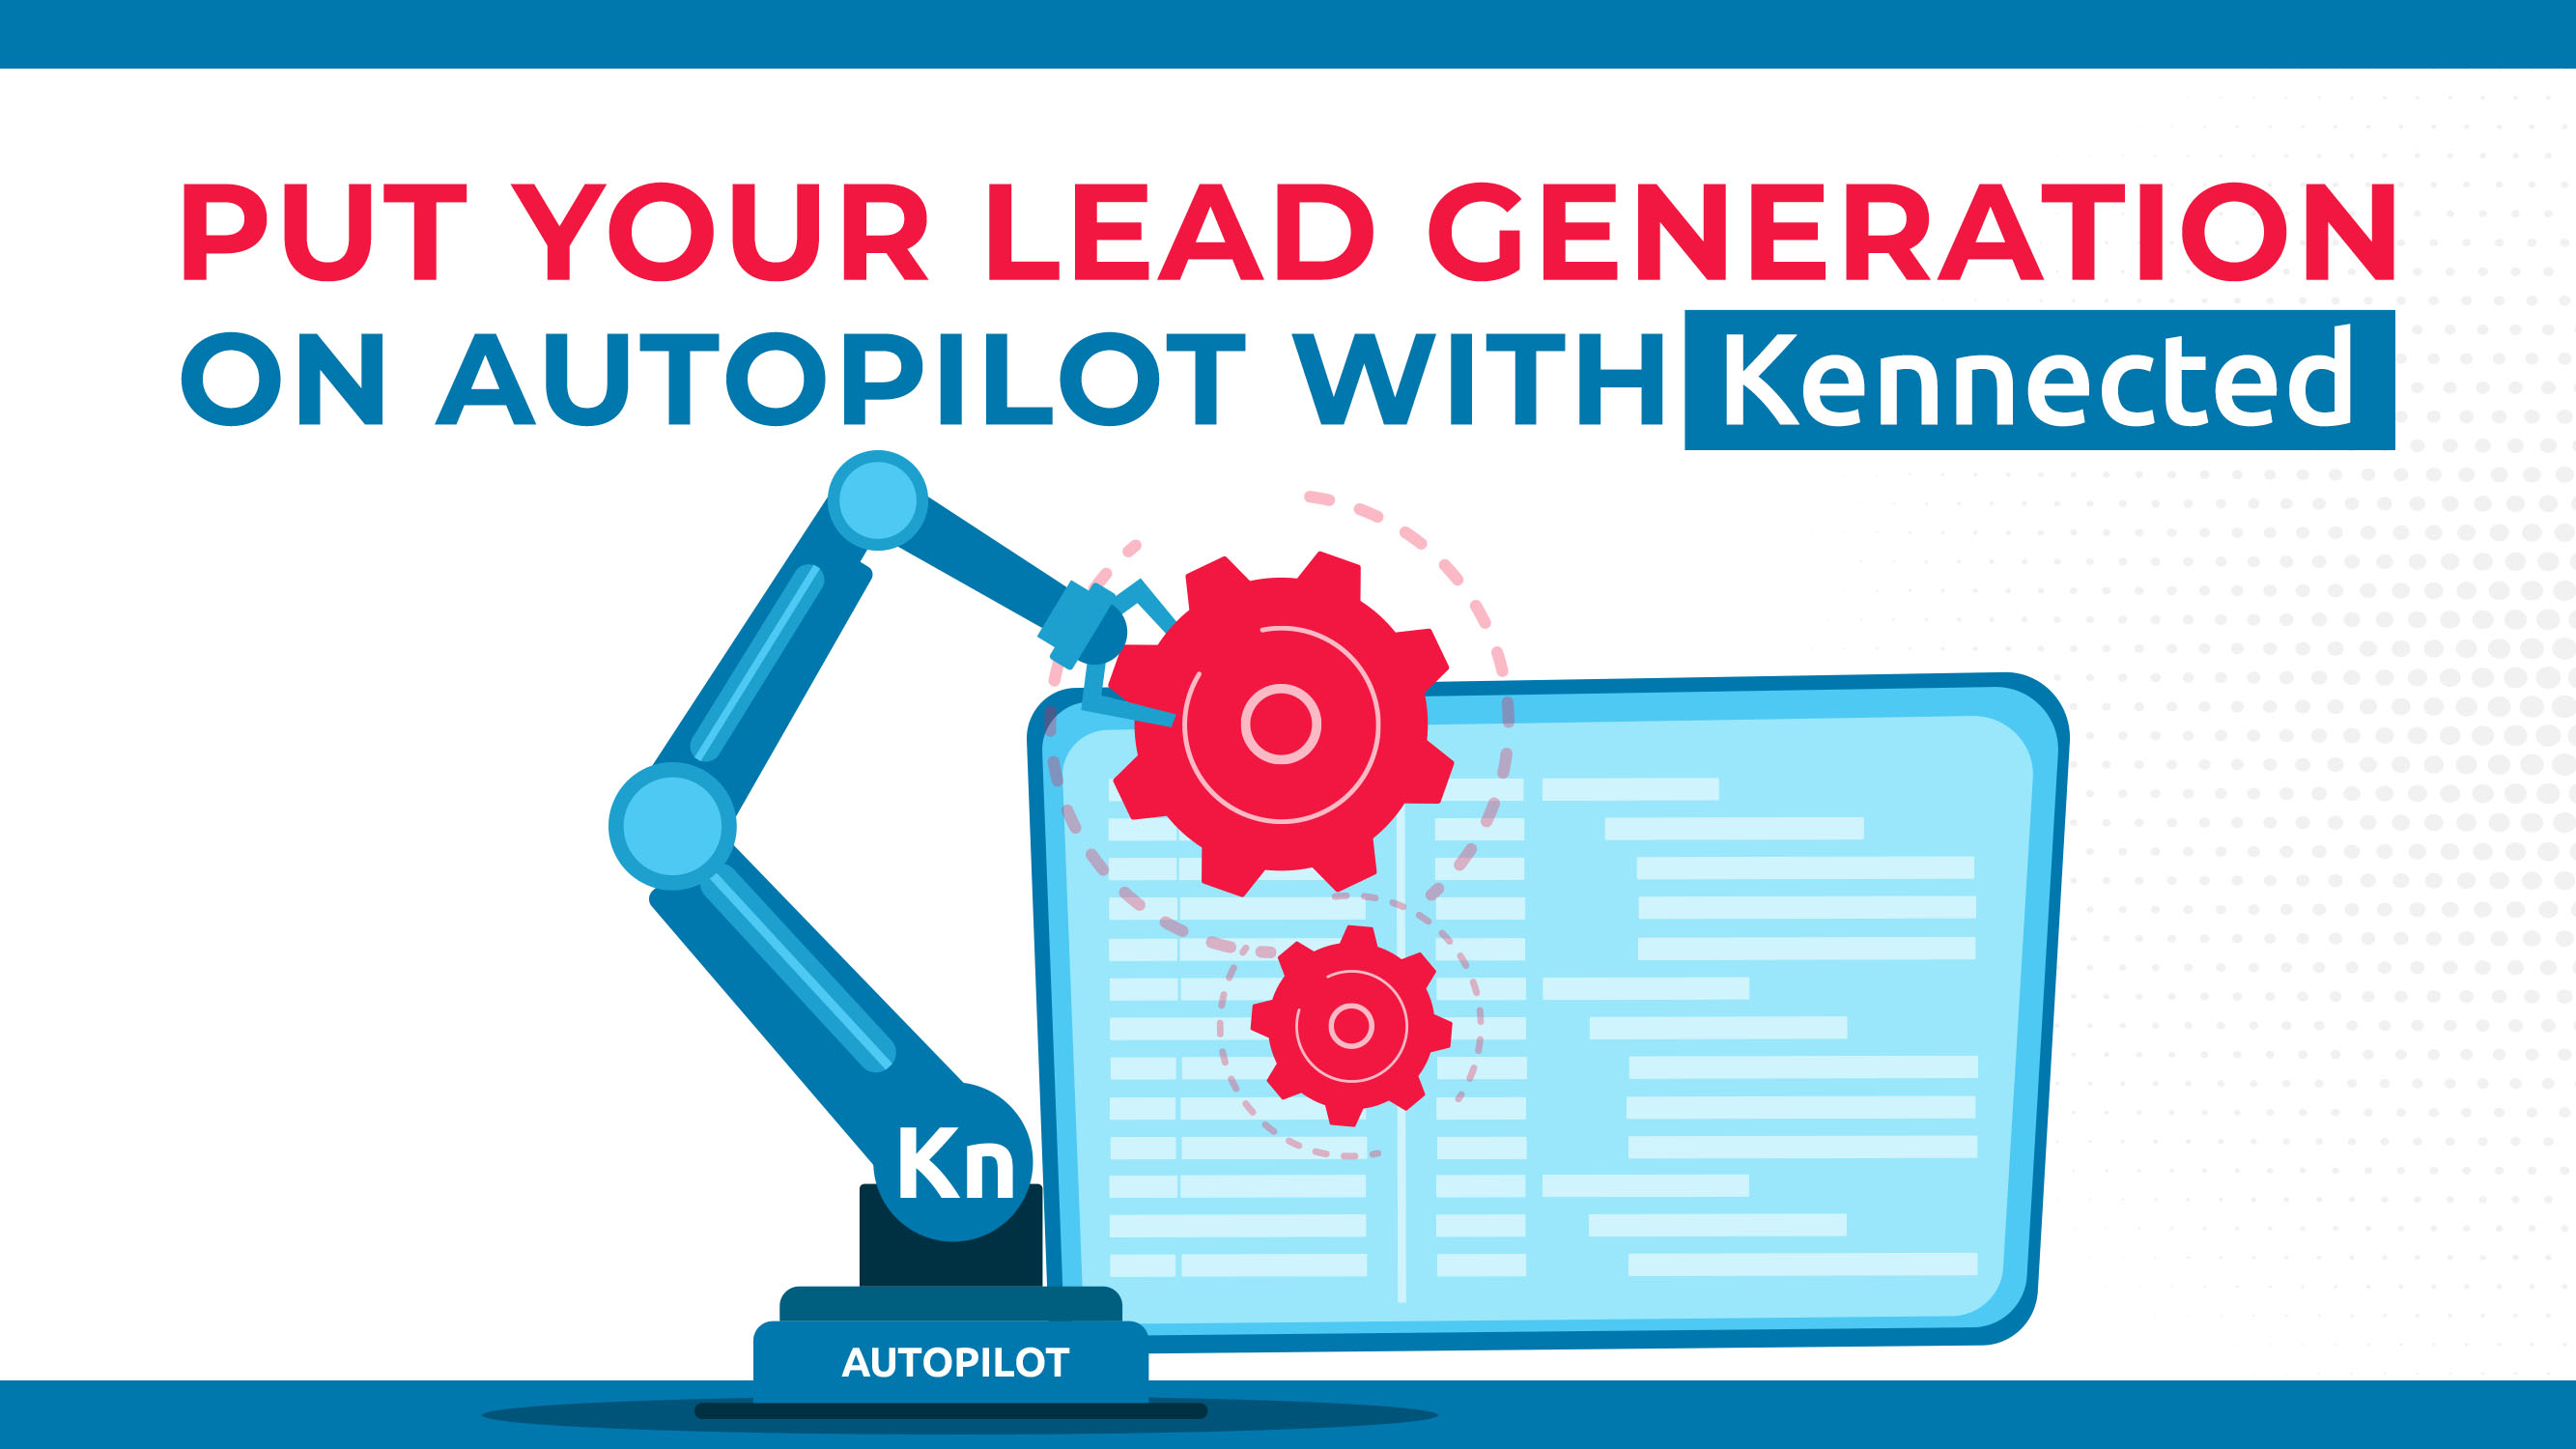 Put Your Lead Generation On Autopilot With Kennected